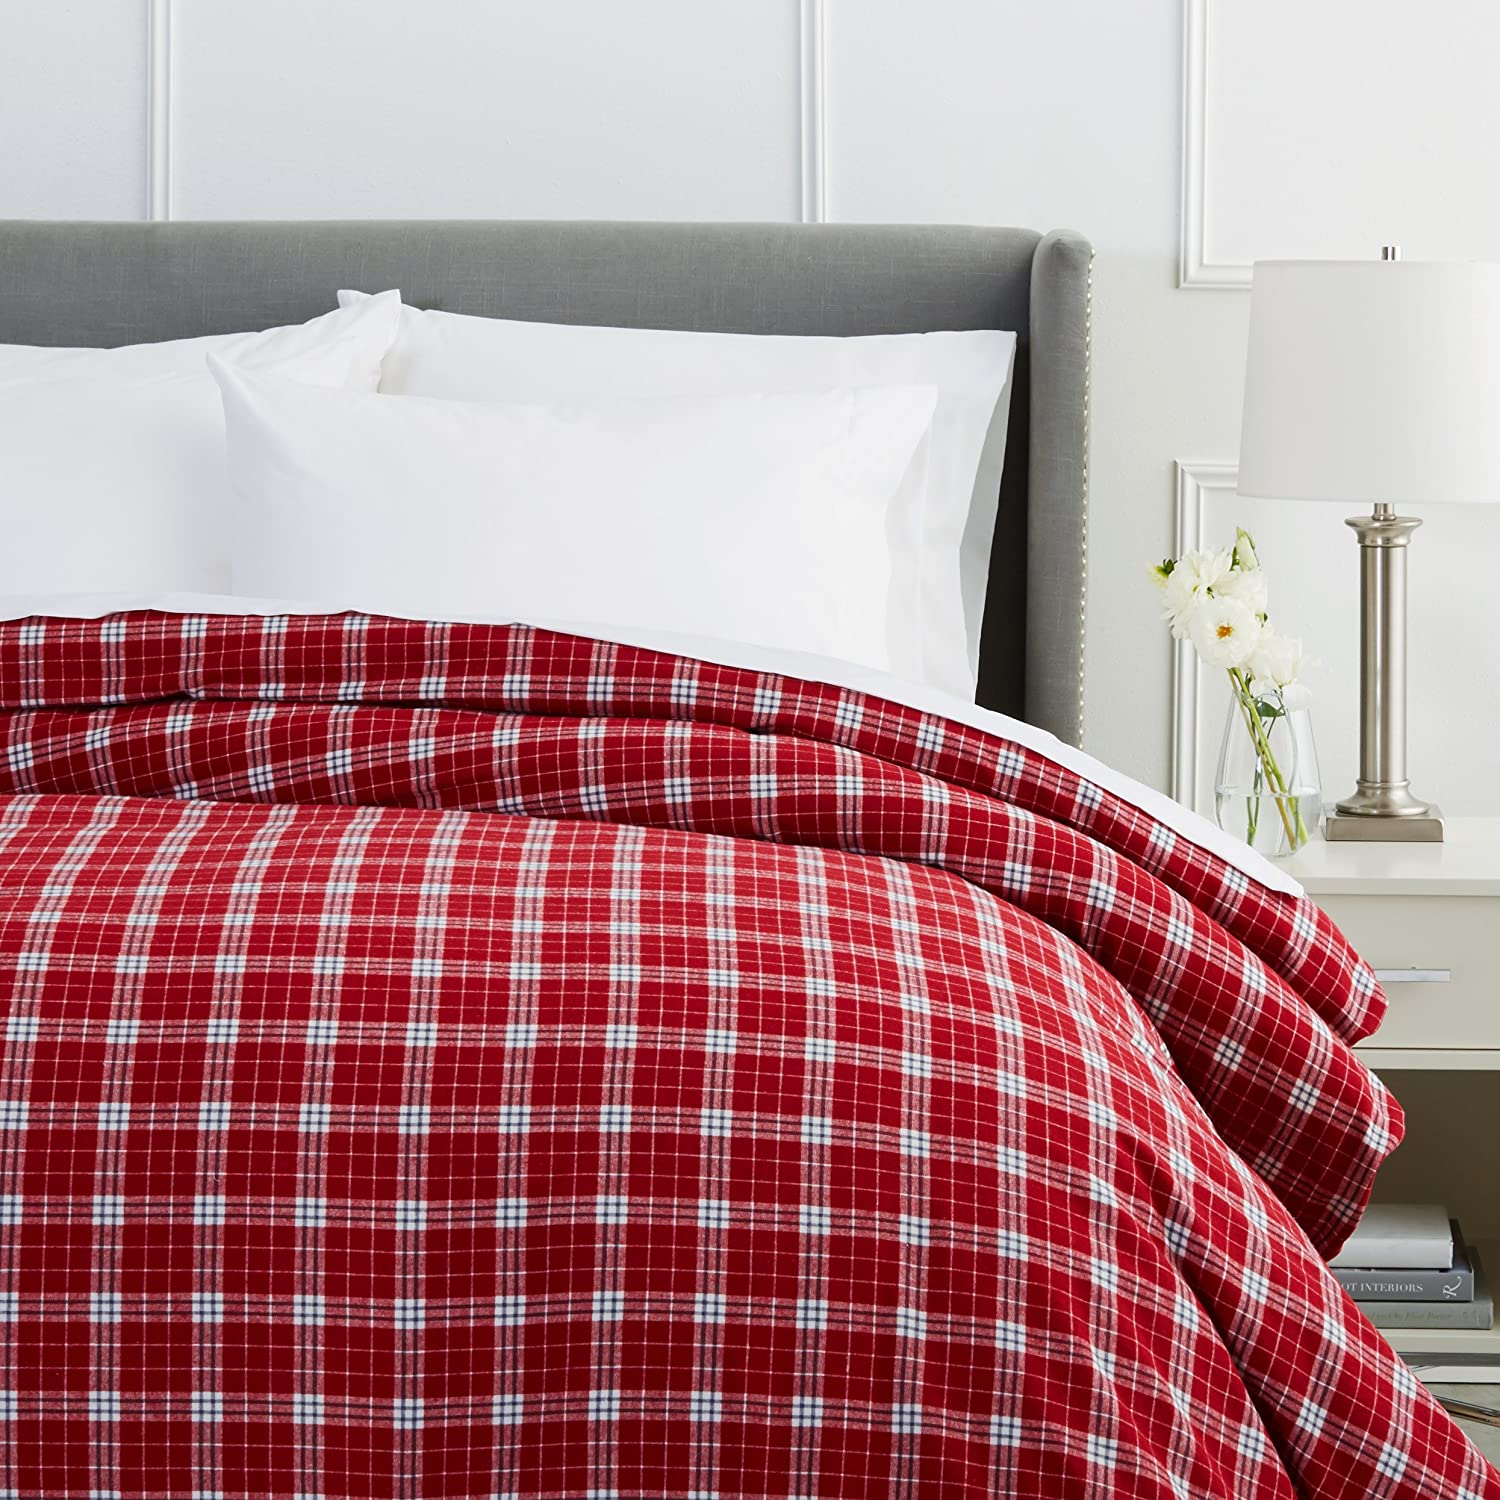 piece plaid comforter multiple a red bedding grey mainstays plus duvet bag sizes in bed com cover ip set walmart